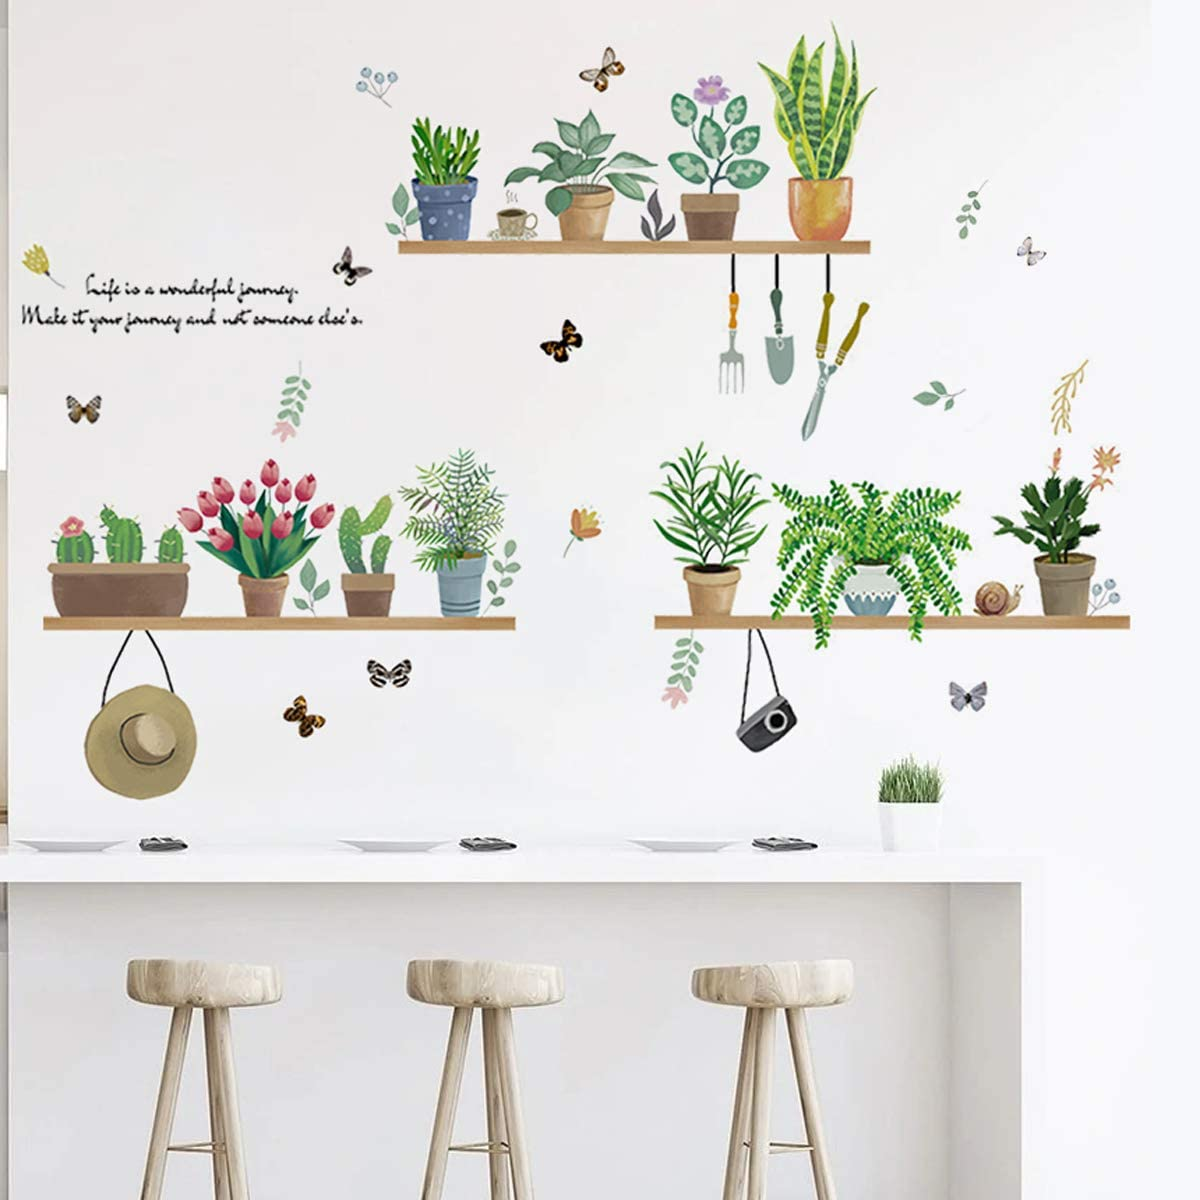 Green Plant Wall Decals Stickers for Kitchen Dinning Room Decor Potted Plants Cactus Nature Vinyl Sticker Peel and Stick Decal for Home Decoration